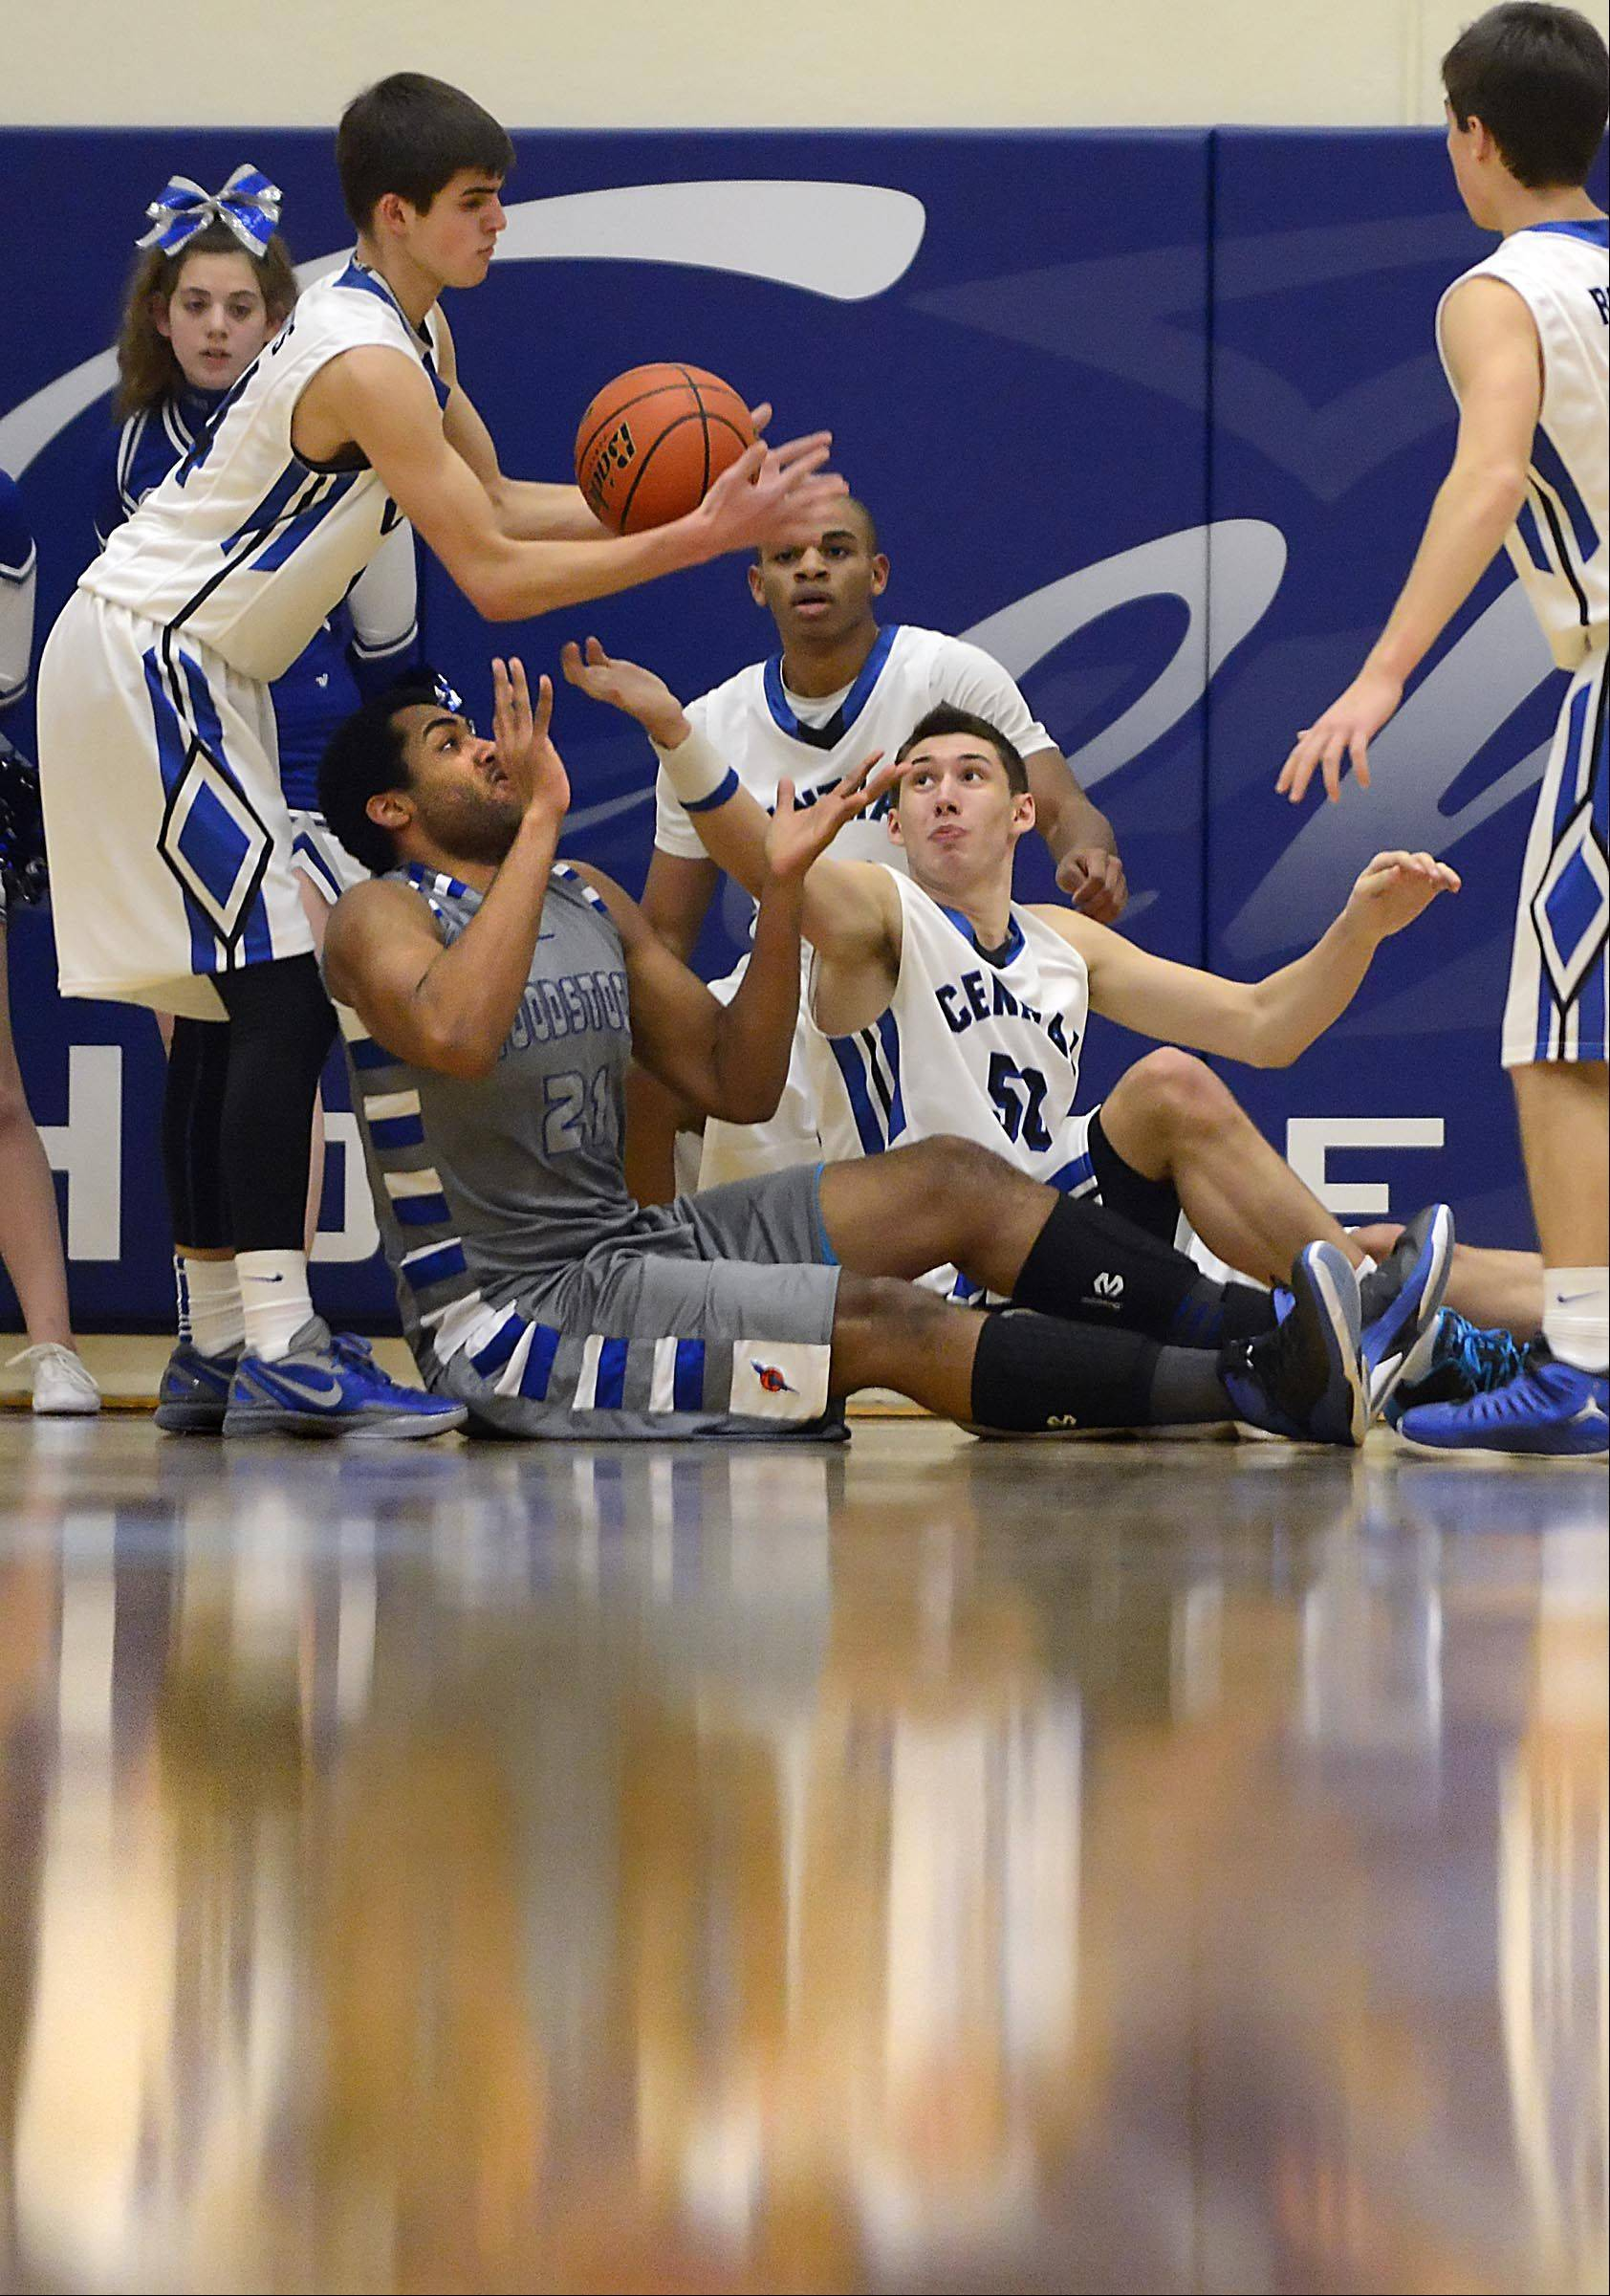 Burlington Central's Brett Rau grabs a loose ball as teammate Duncan Ozburn and Woodstock's Damian Stoneking reach from the floor.